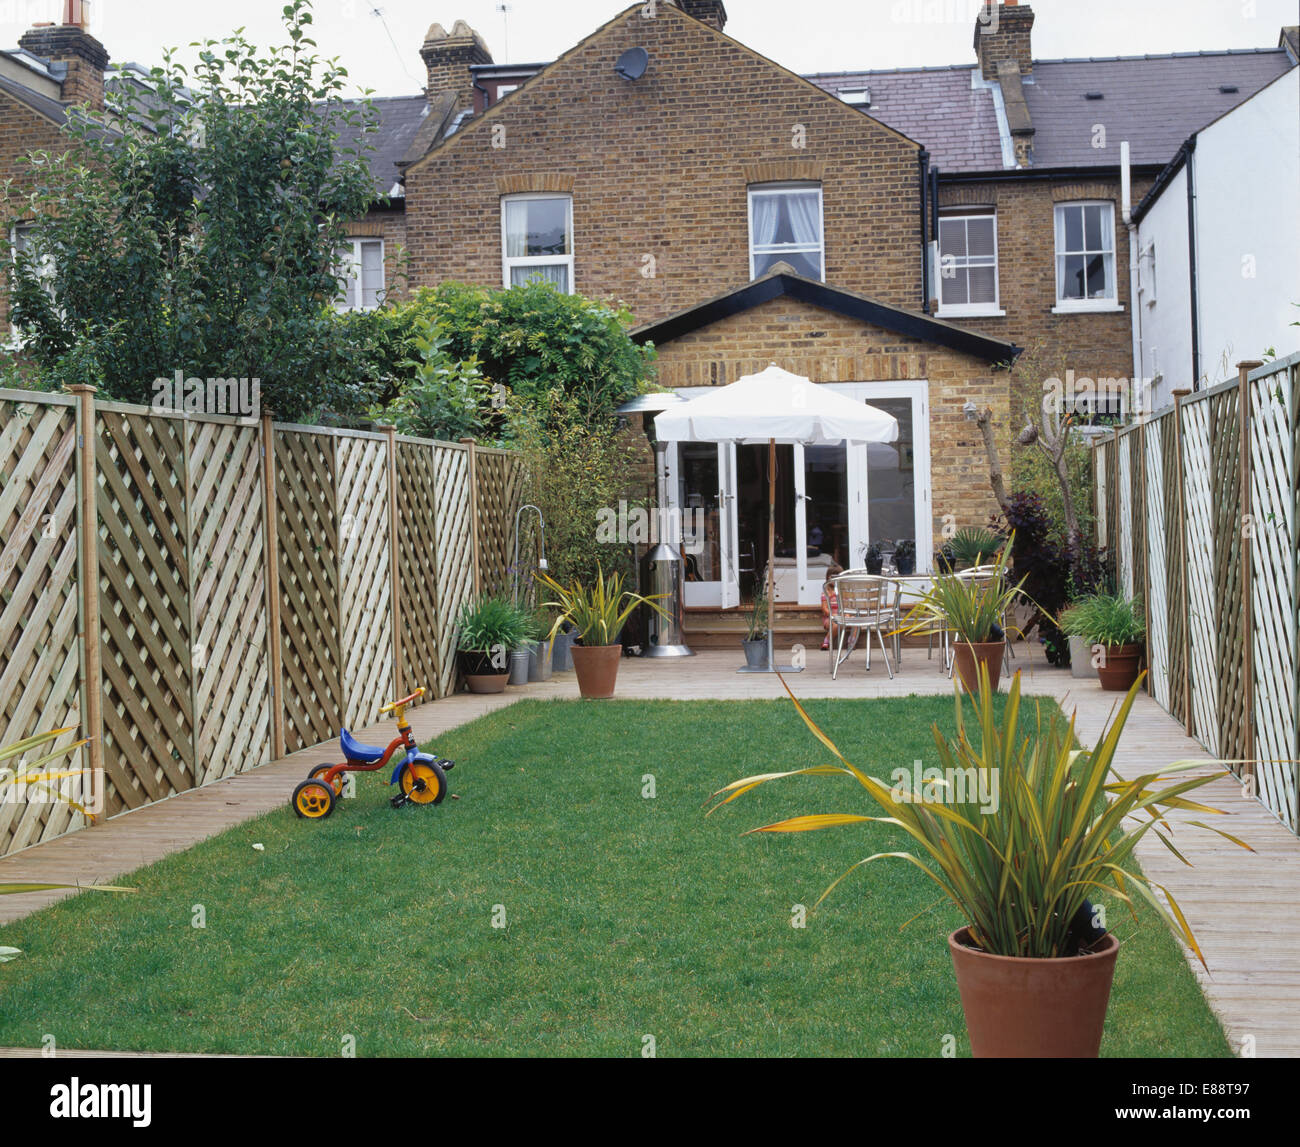 Lawn And Trellis Fence In Back Garden Of Townhouse With Small Extension    Stock Image